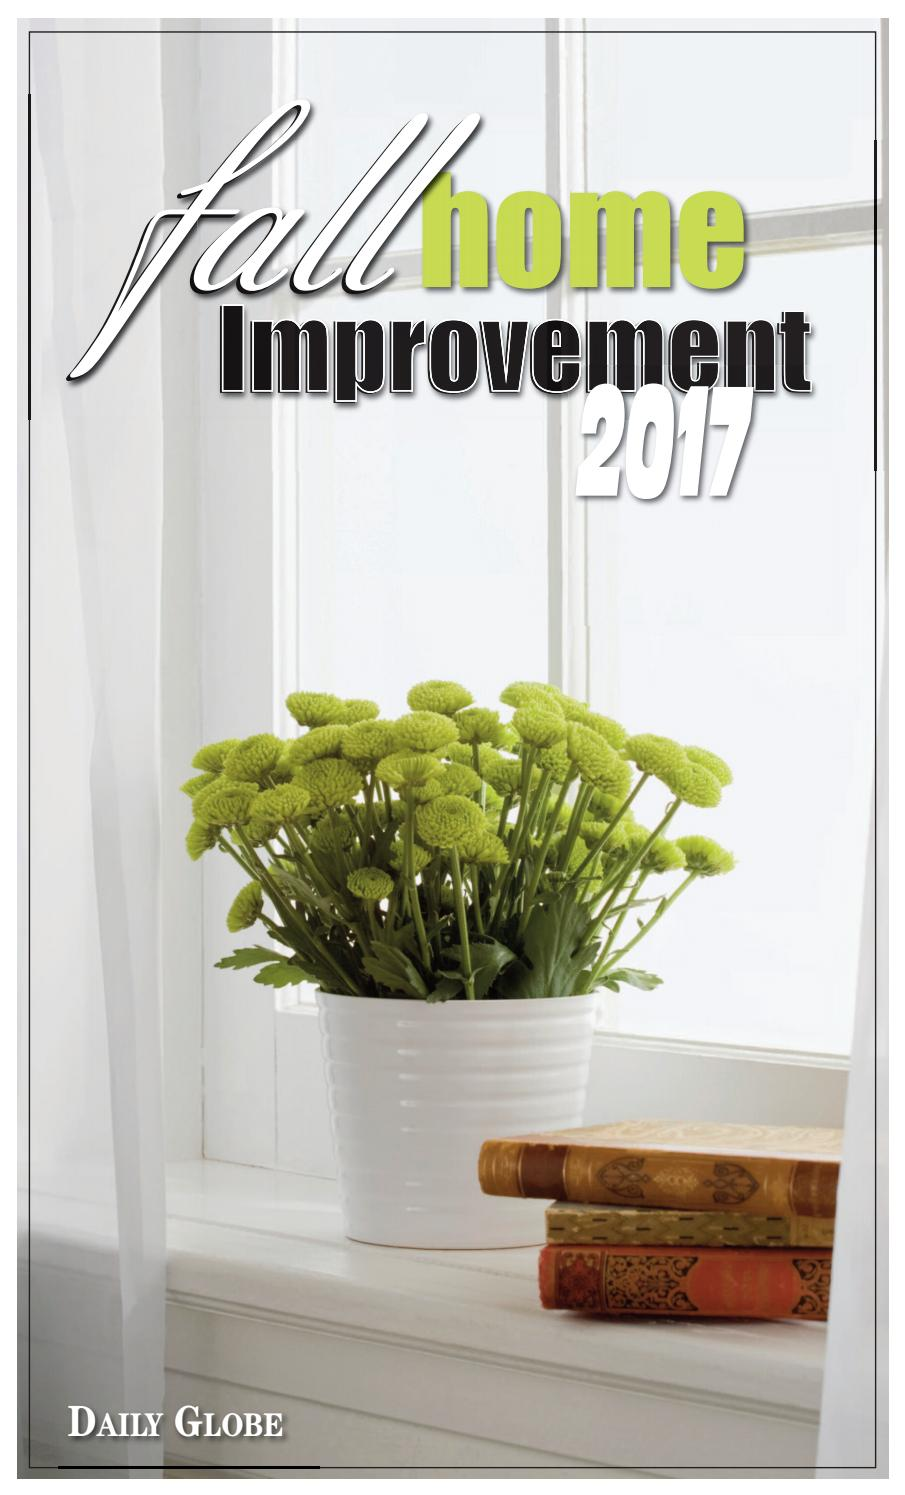 Fall Home Improvement 2017 by Jacob Vallejo - issuuFall Home Improvement 2017 - 웹